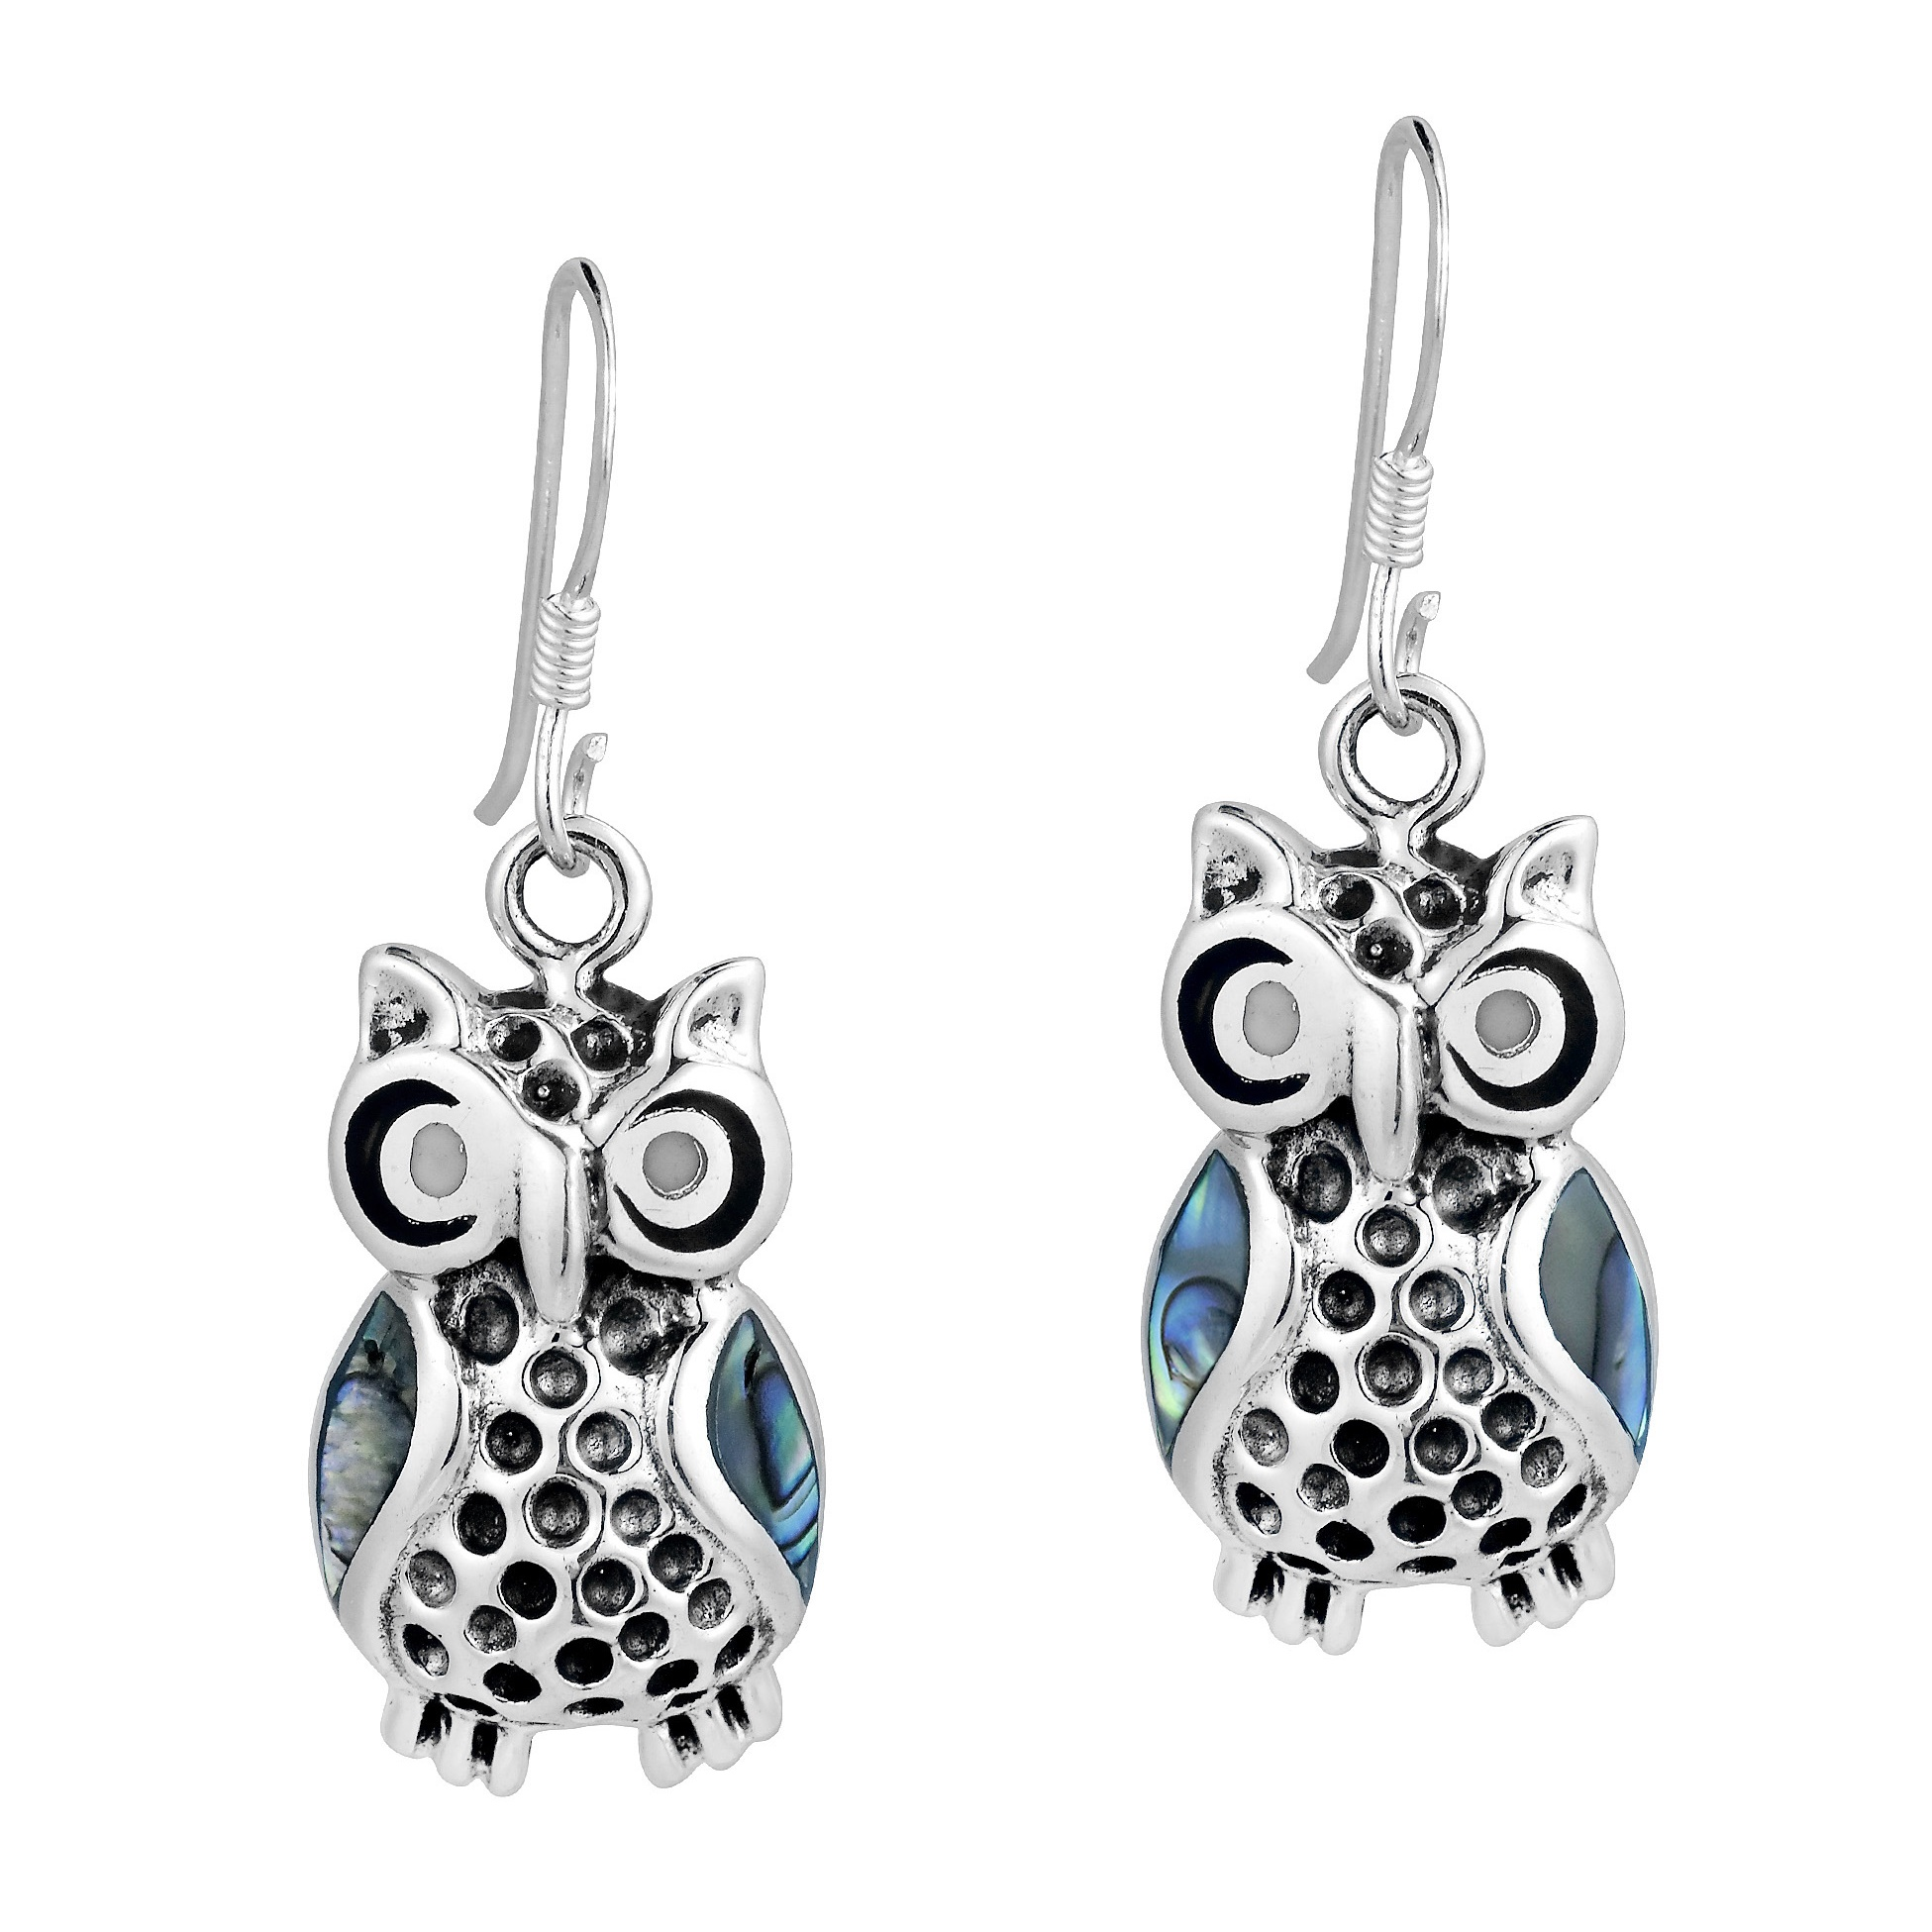 3958ea71d Crafted with sterling silver by Thai artisans, these earrings feature  inlaid accents of enamel or abalone ...